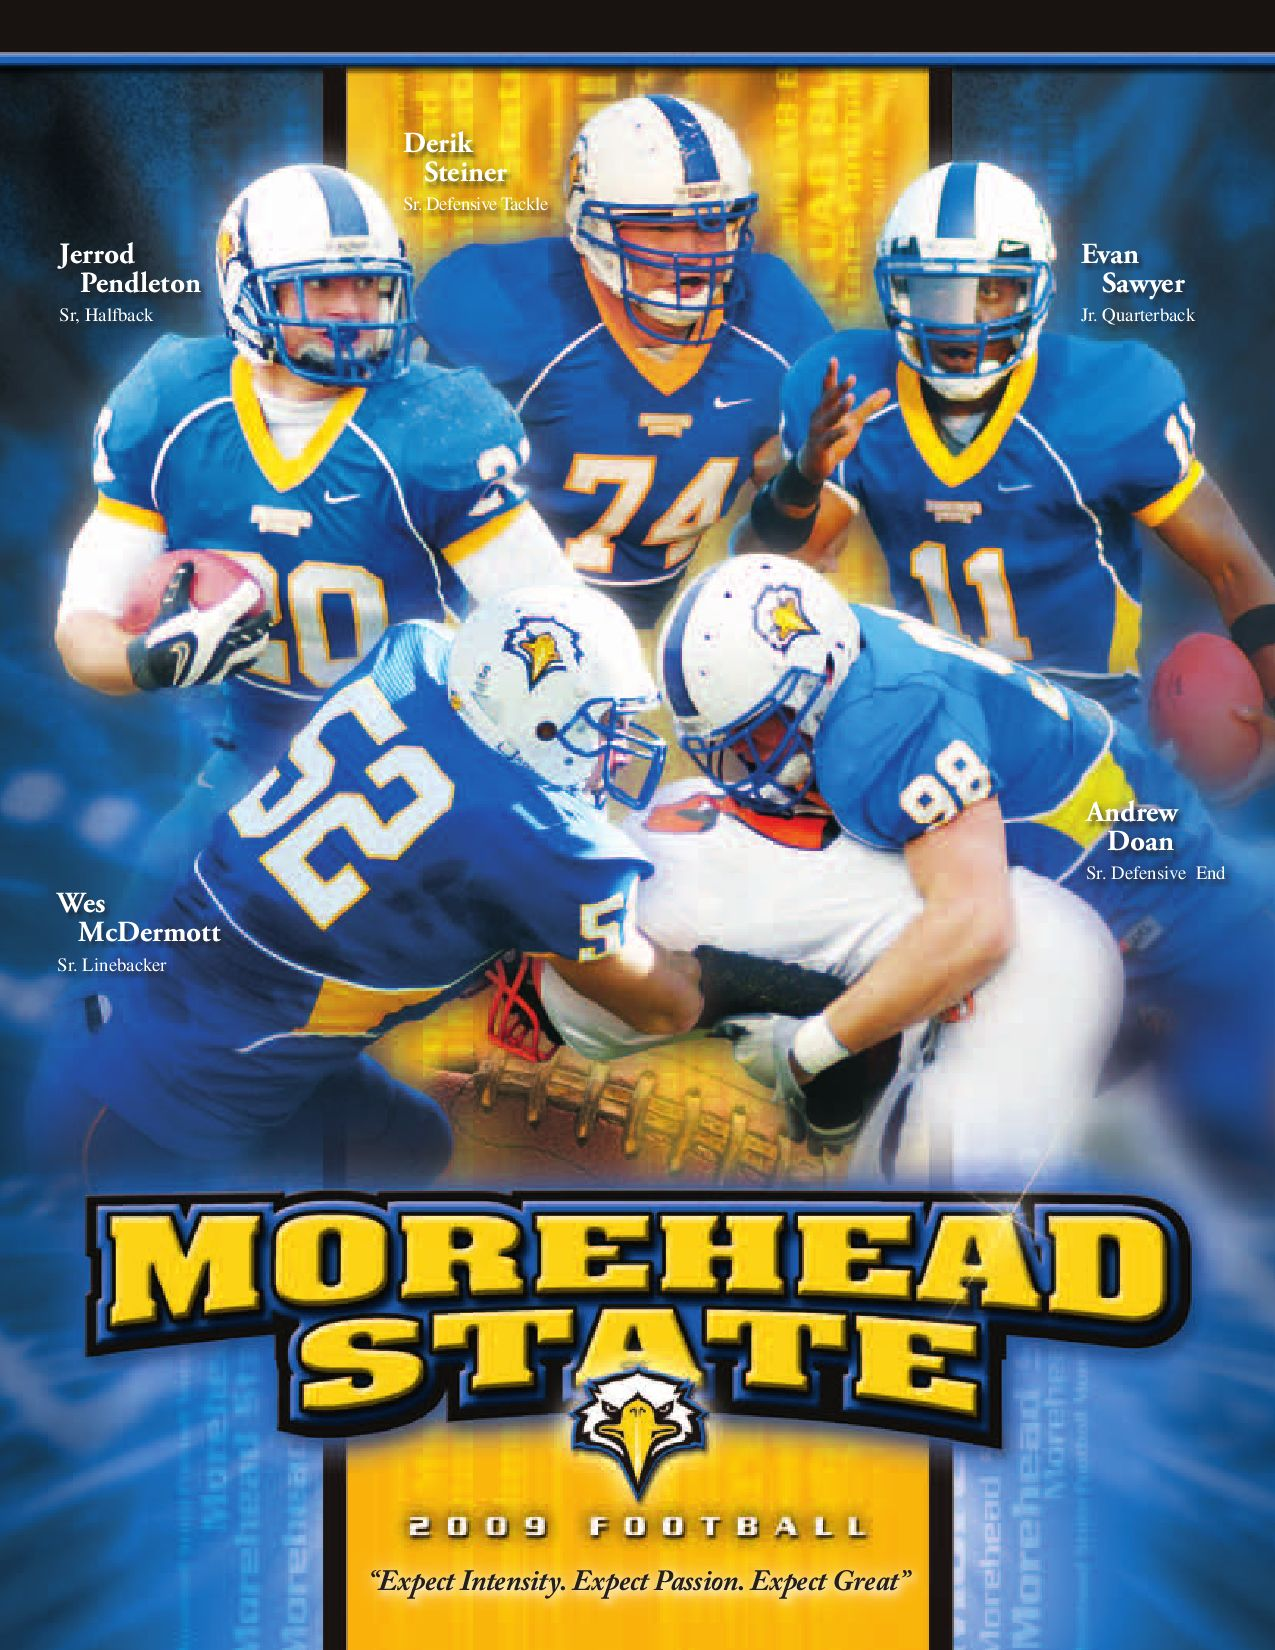 best service 83216 f0b8a 2009 Morehead State Football Media Guide by Drew Dickerson ...